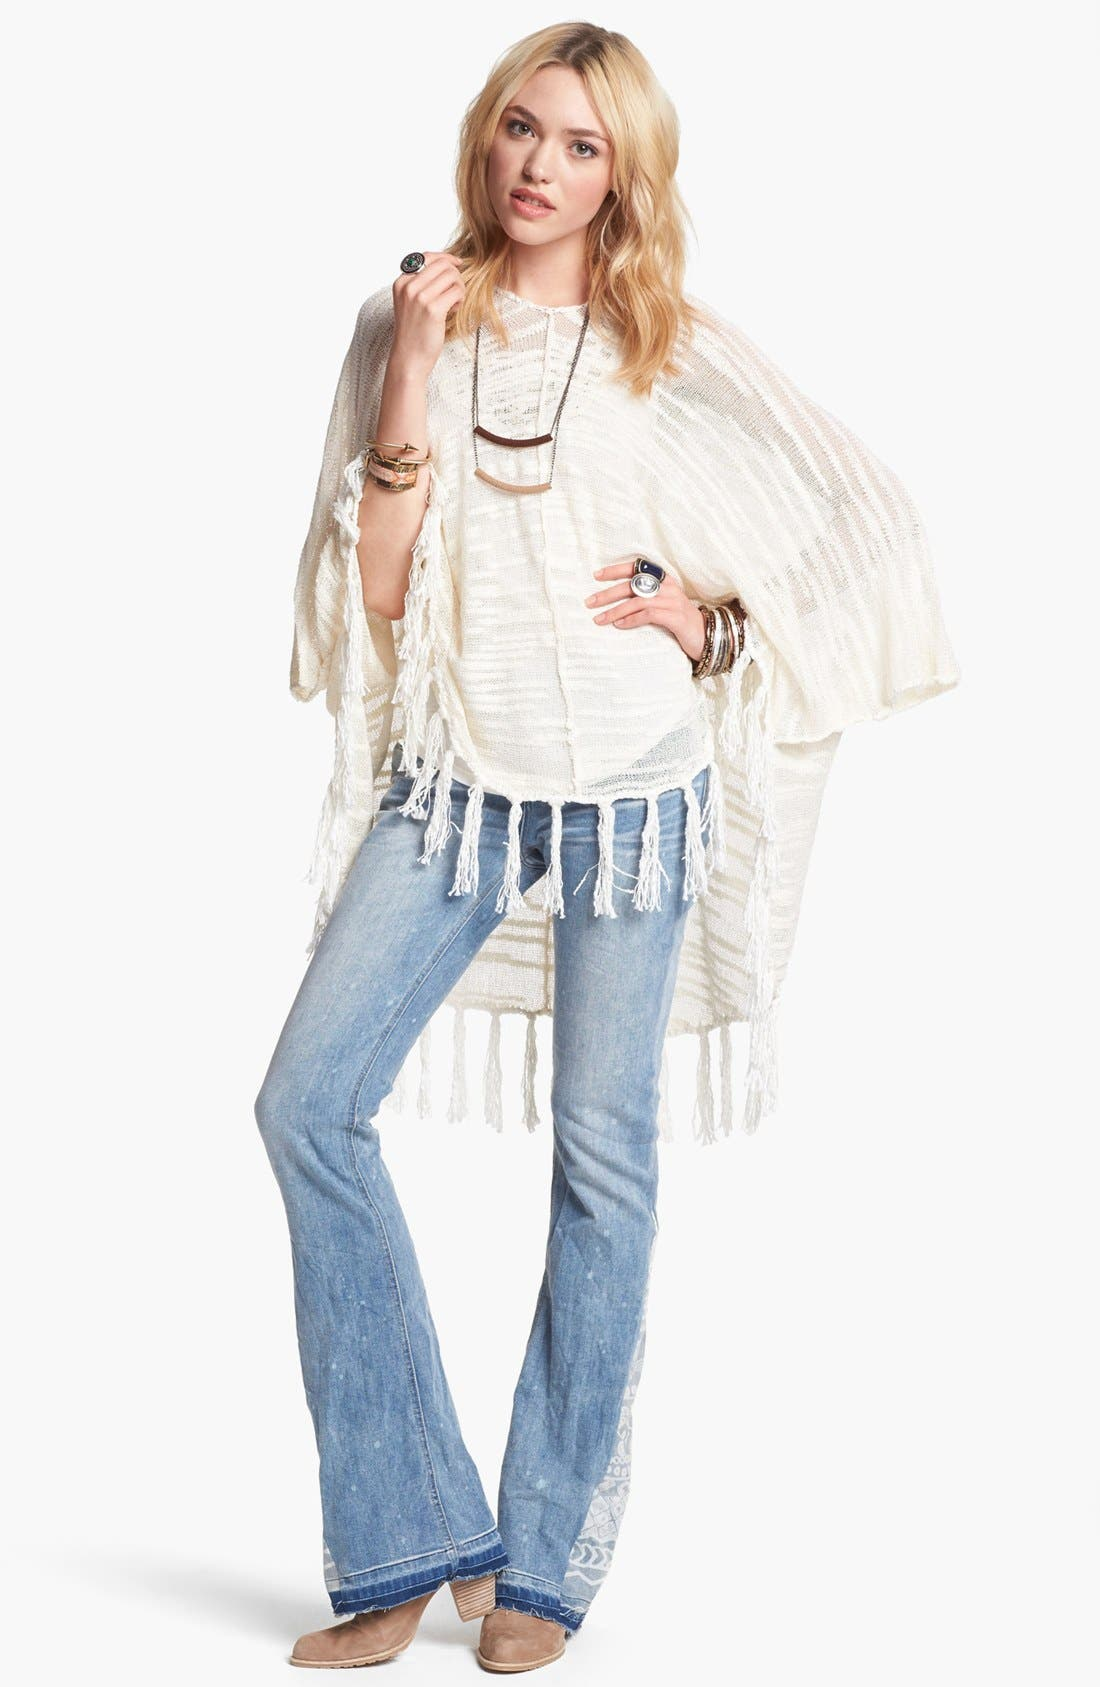 Main Image - Free People Poncho & Jeans